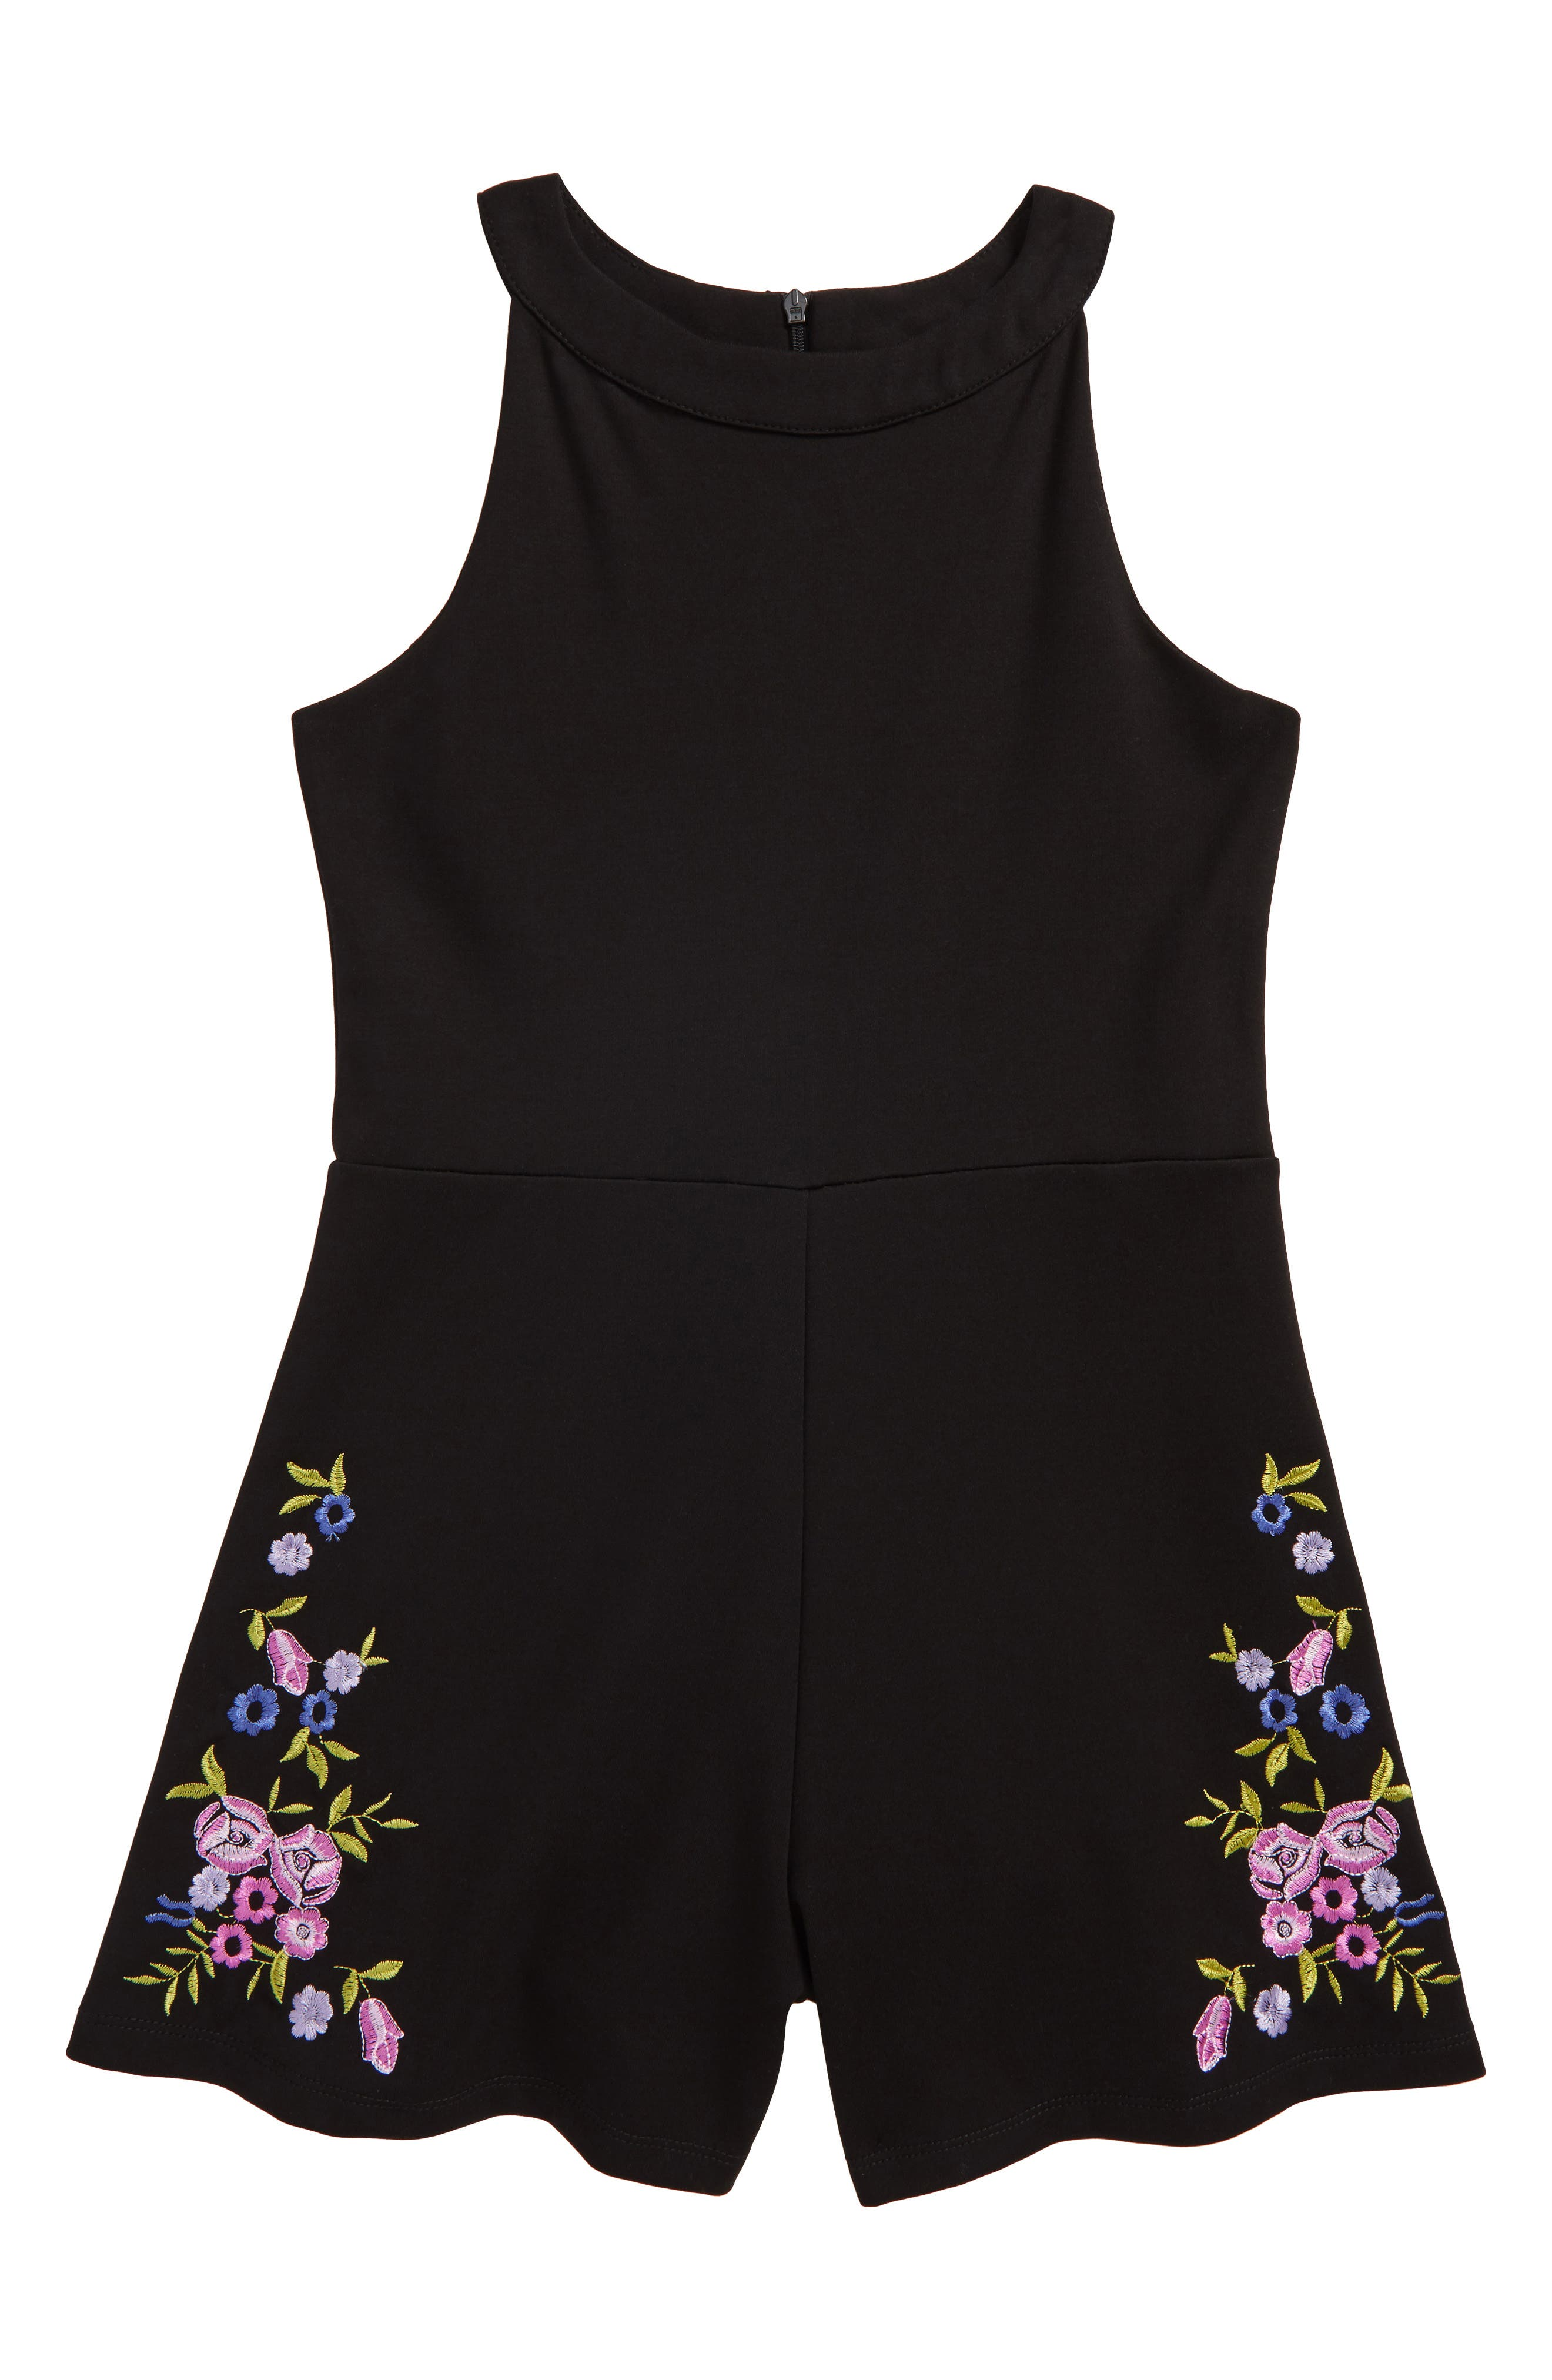 Alternate Image 1 Selected - Elisa B Embroidered Romper (Big Girls)